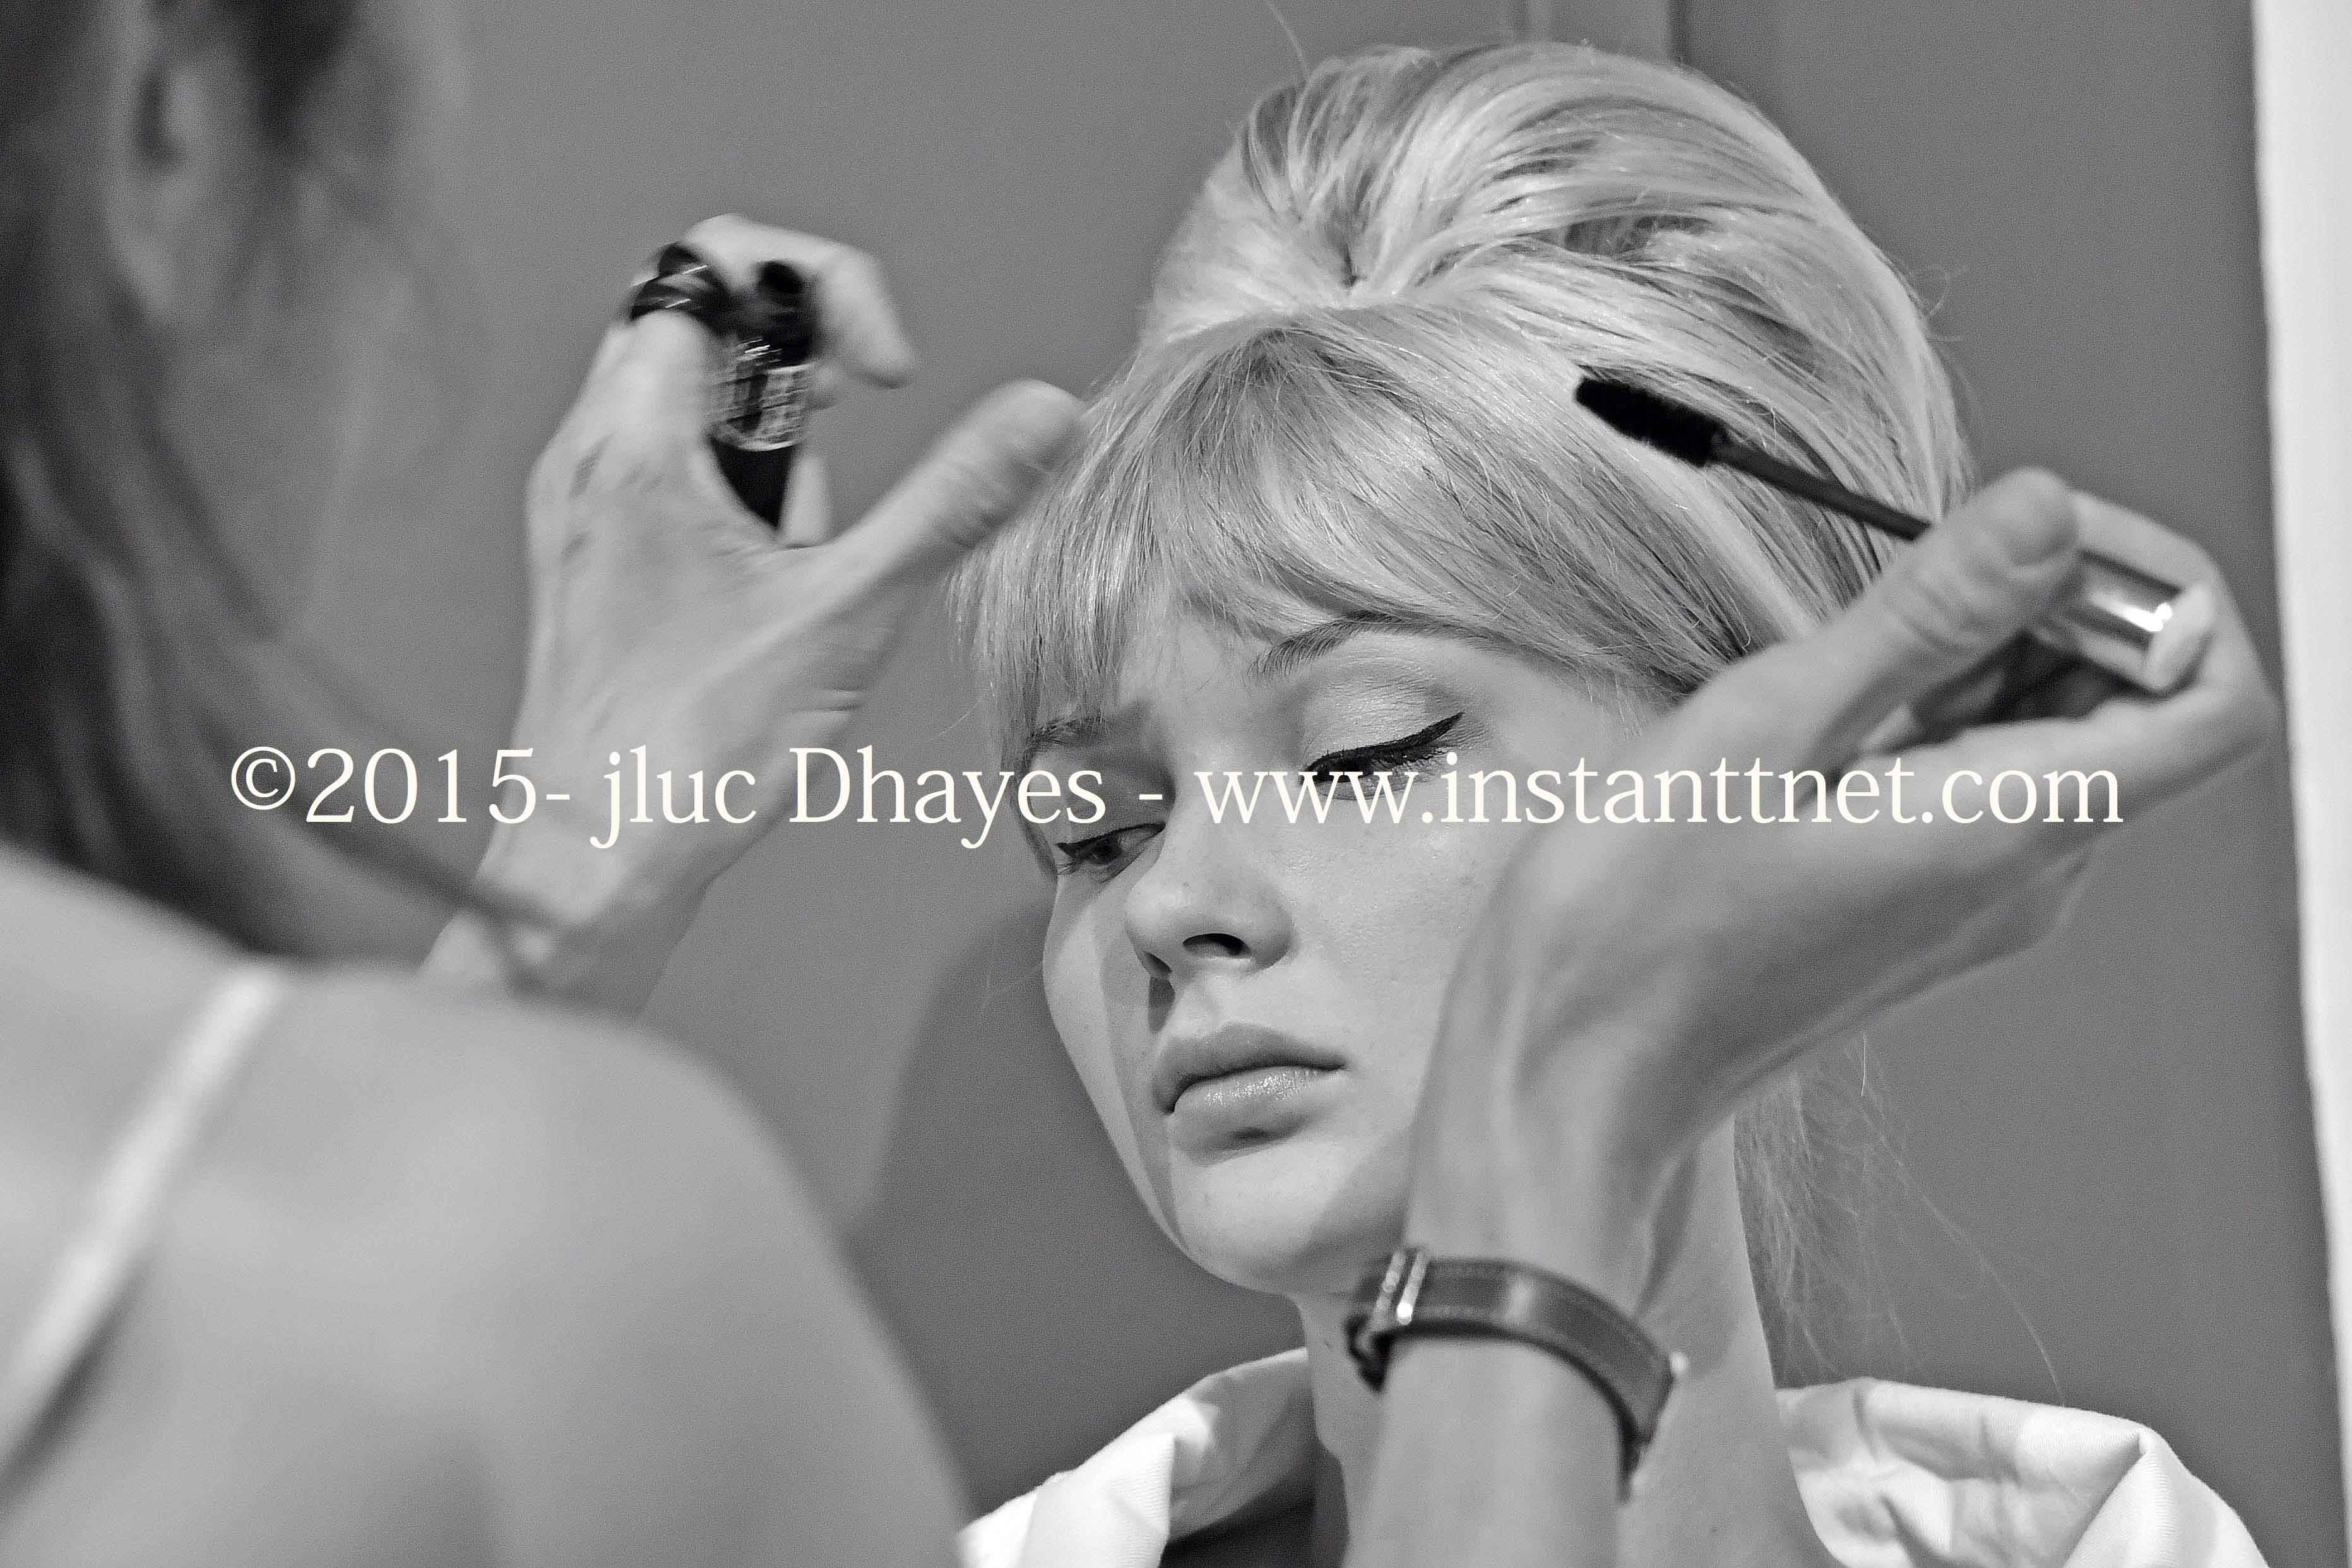 ©jluc.dhayes